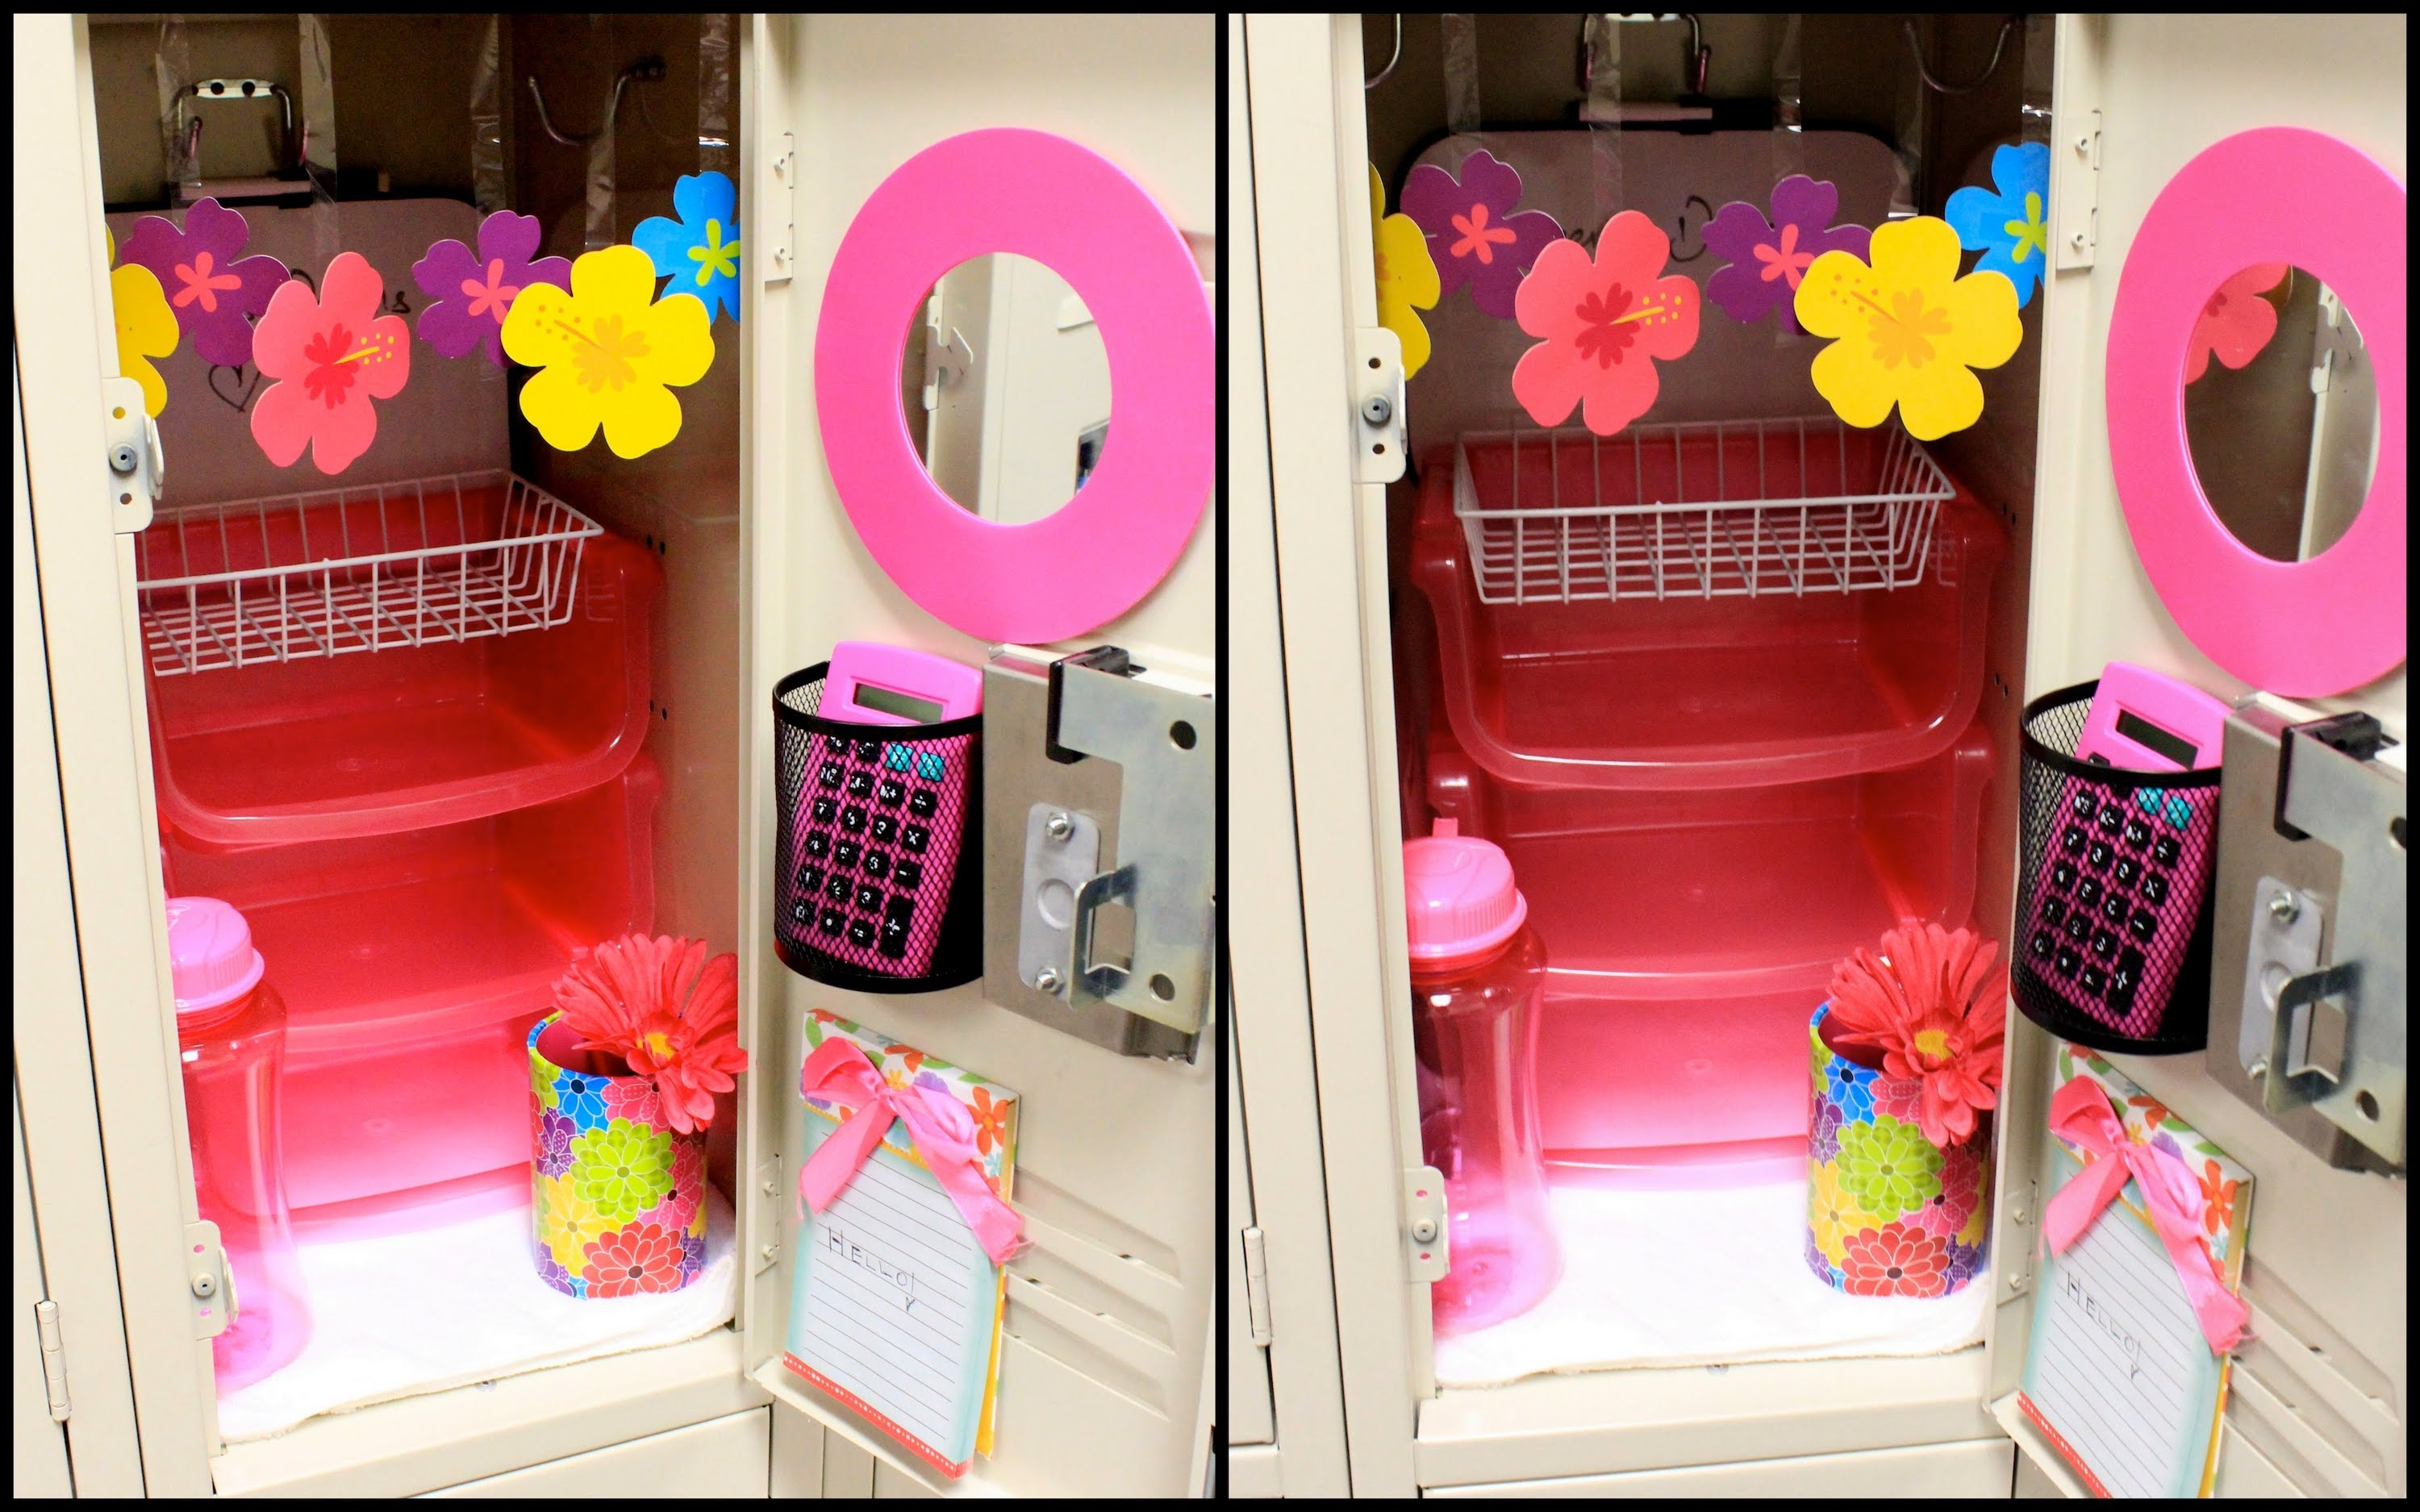 Locker Decoration Ideas easy diy locker decorations ideas for teenagers